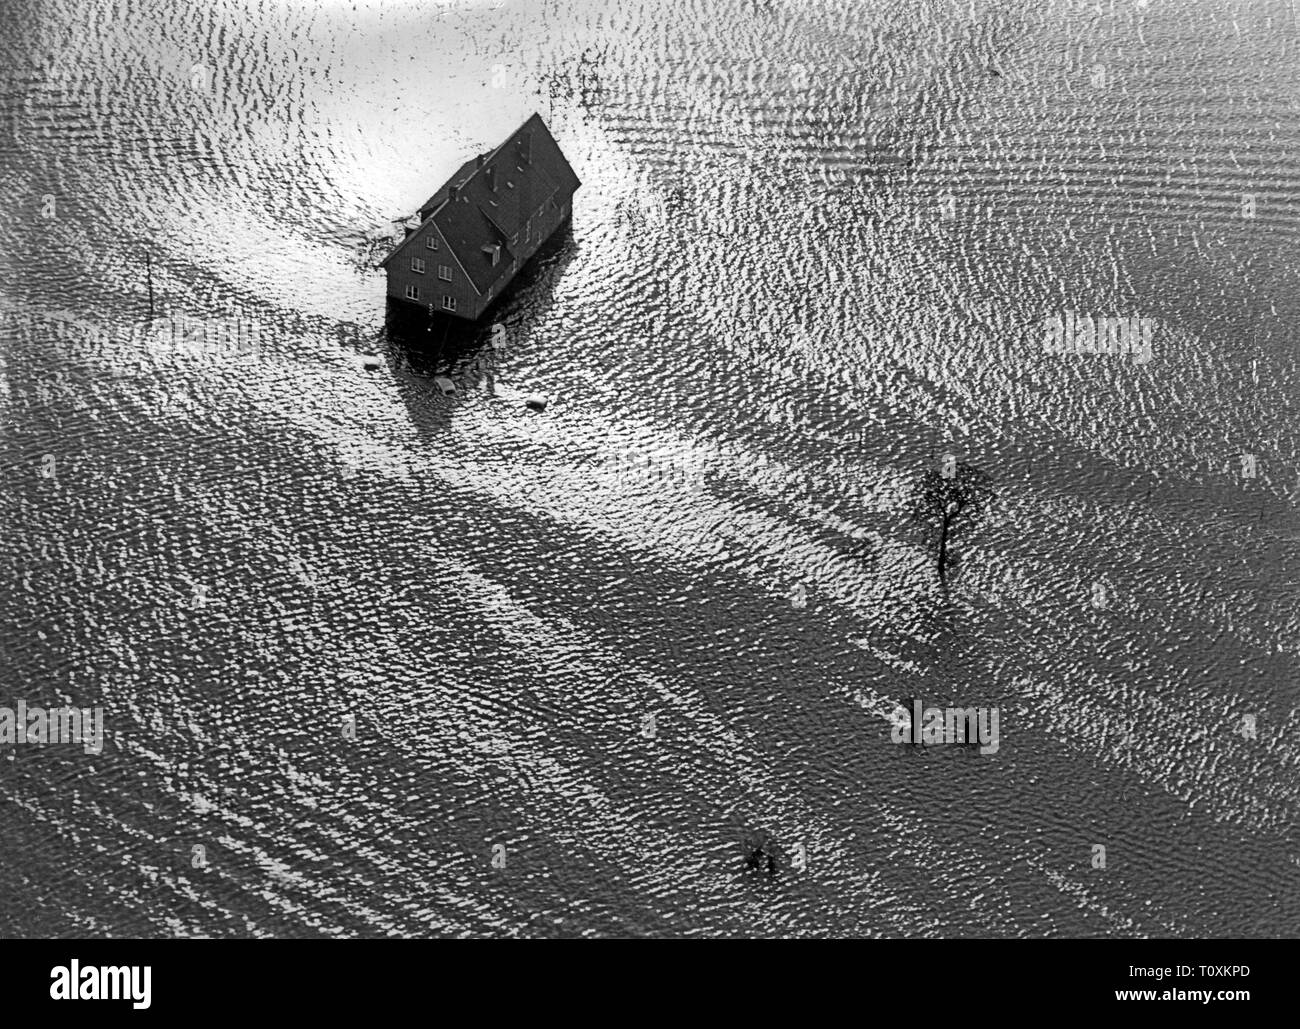 disasters, floods, North Sea flood, 16./17.2.1962, Additional-Rights-Clearance-Info-Not-Available - Stock Image